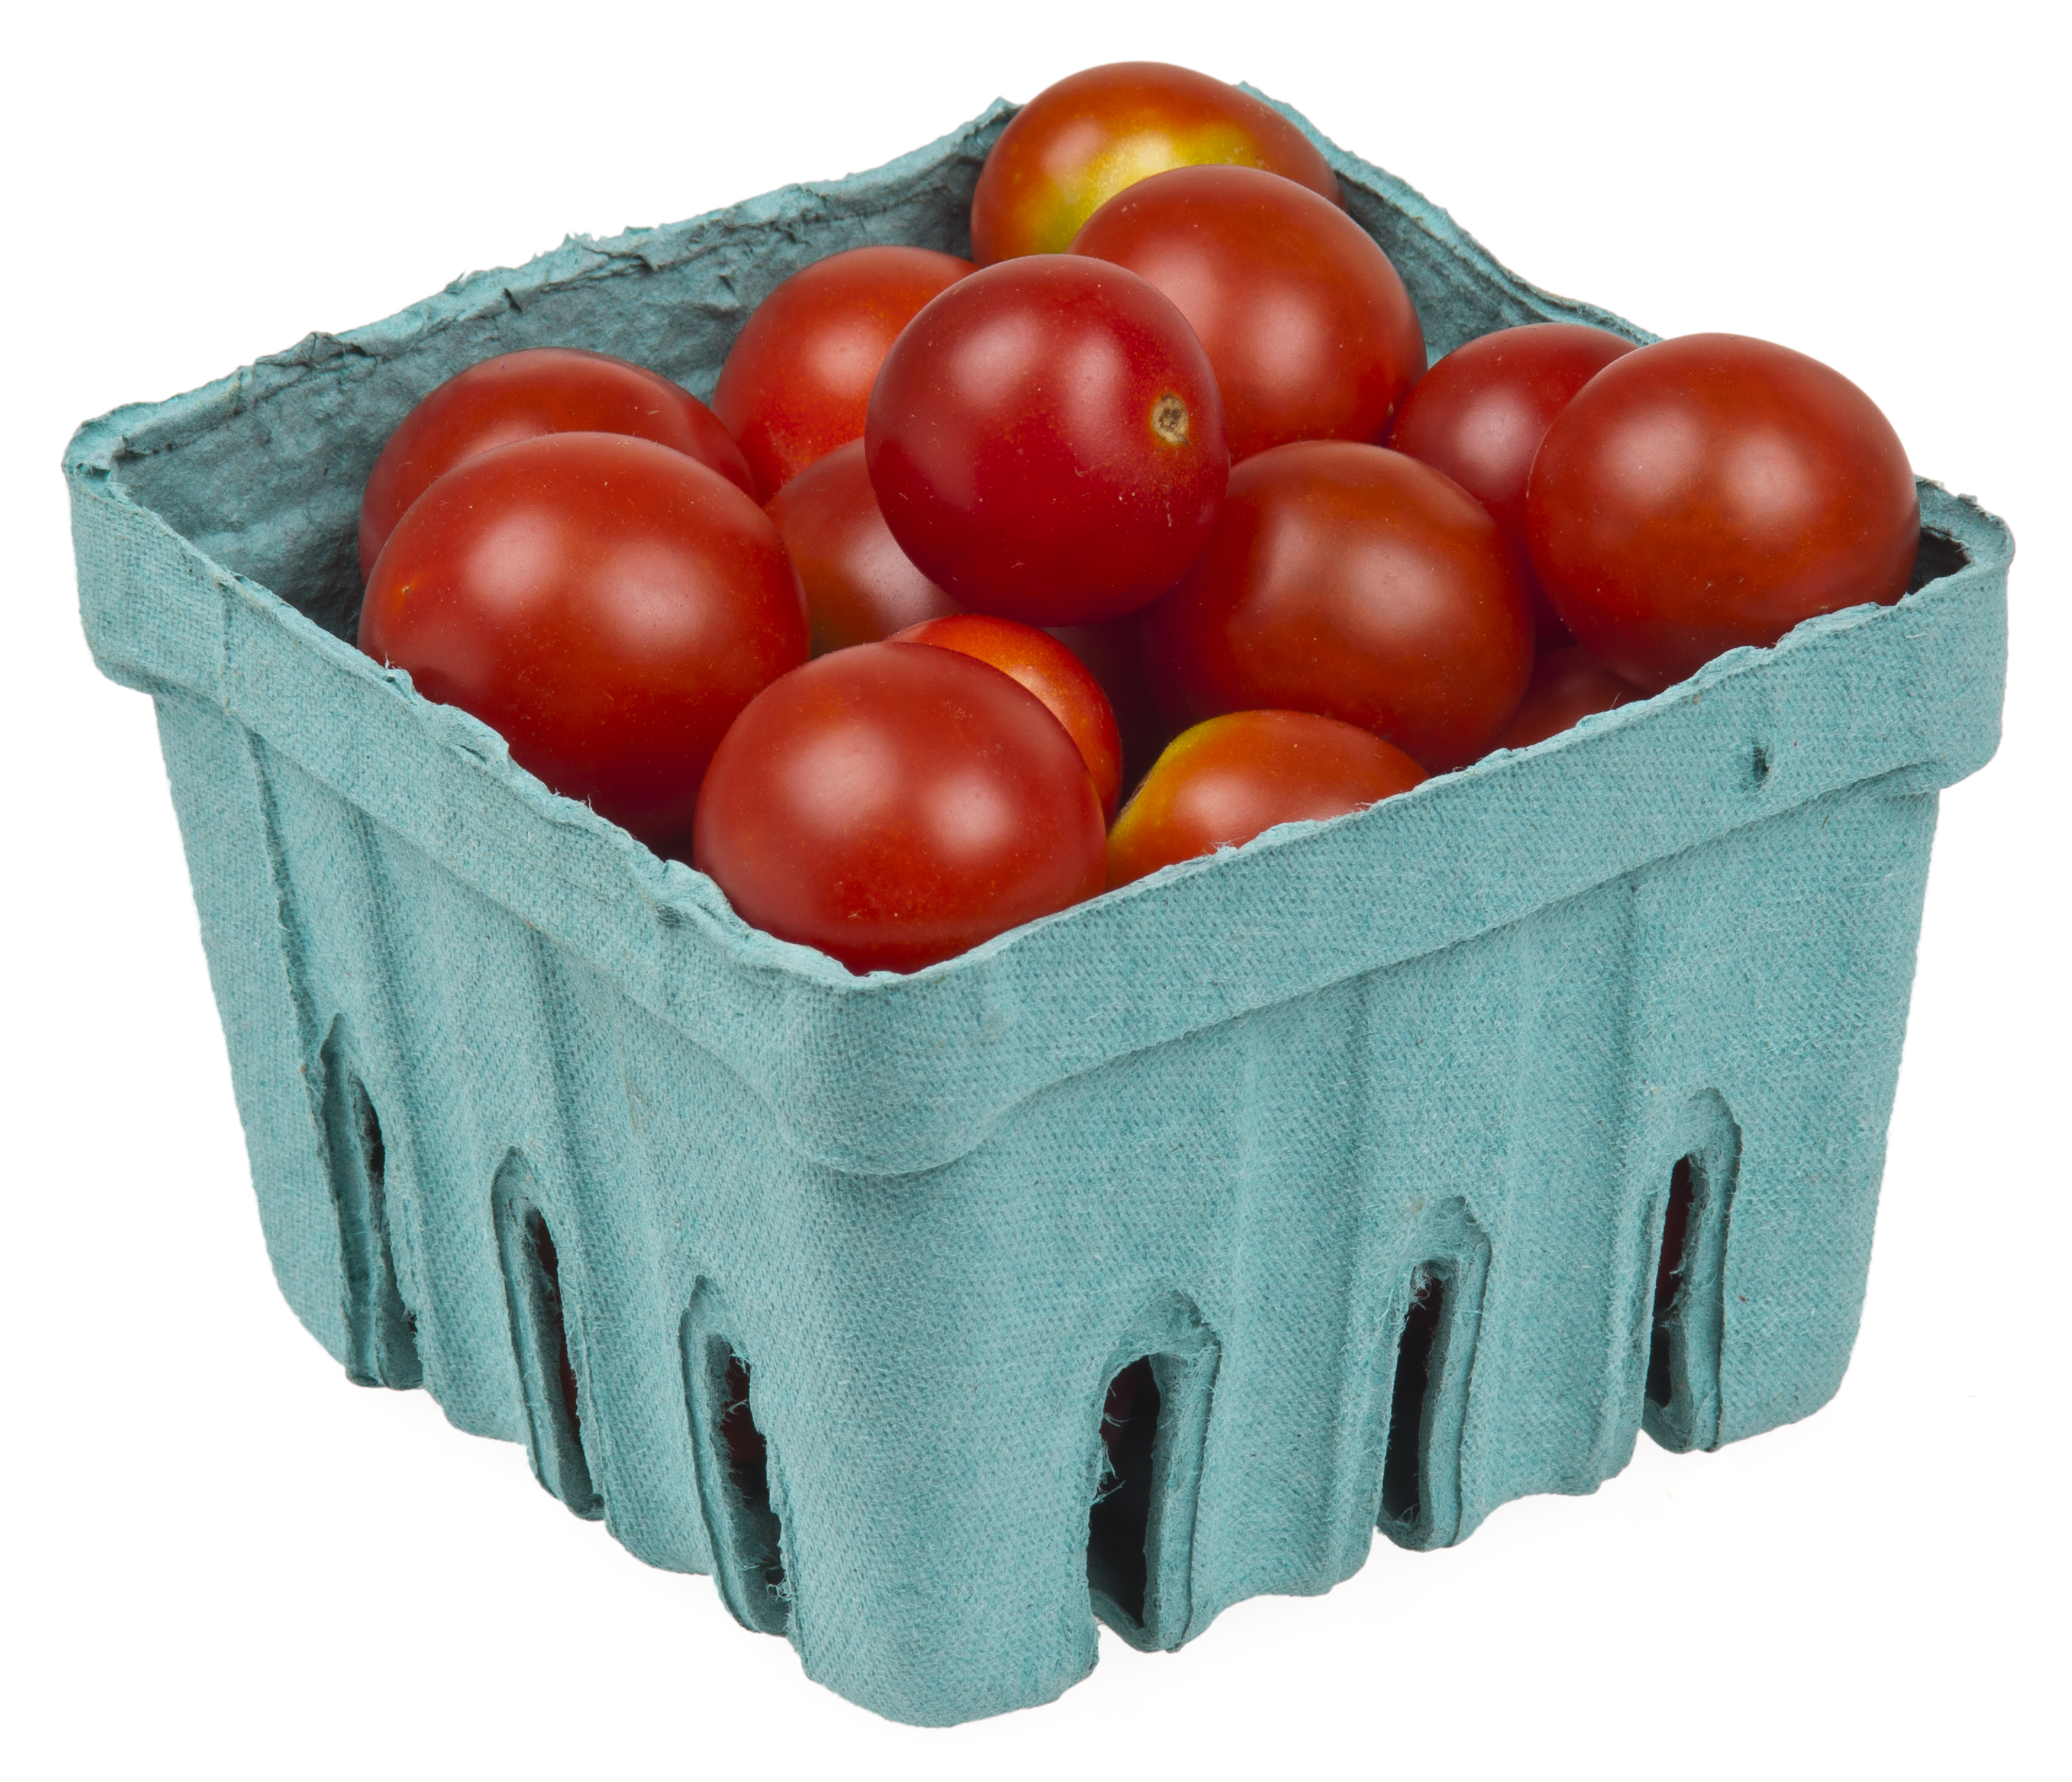 file cherry tomatoes in pack jpg wikimedia commons search clipart baby in a shower search clipart in powerpoint